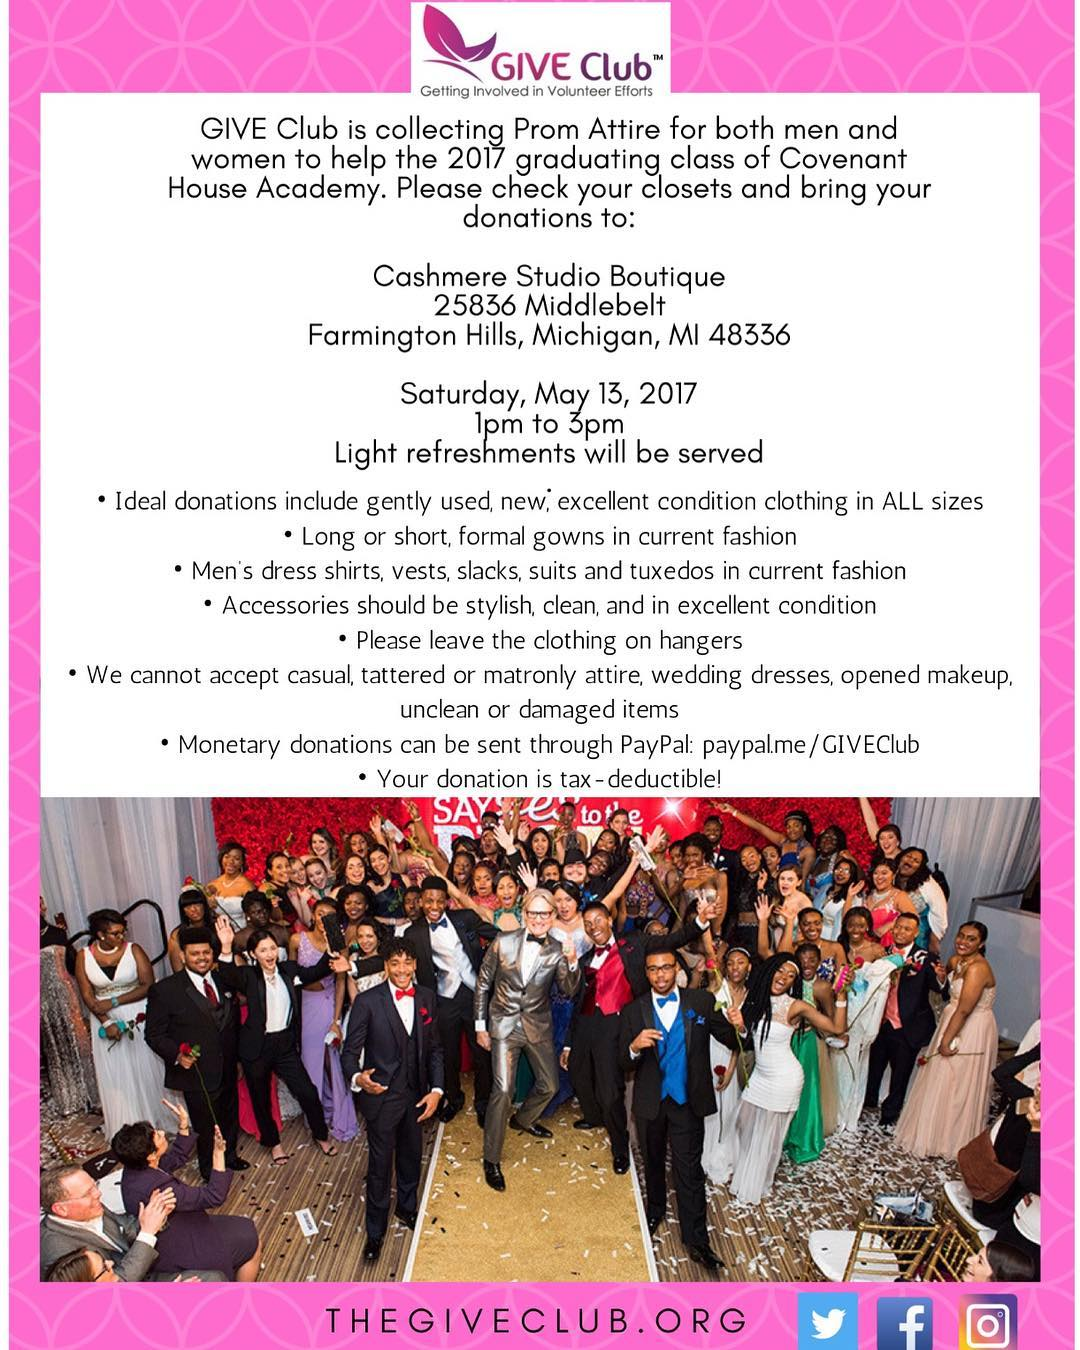 GIVE Club Collecting Prom Attire